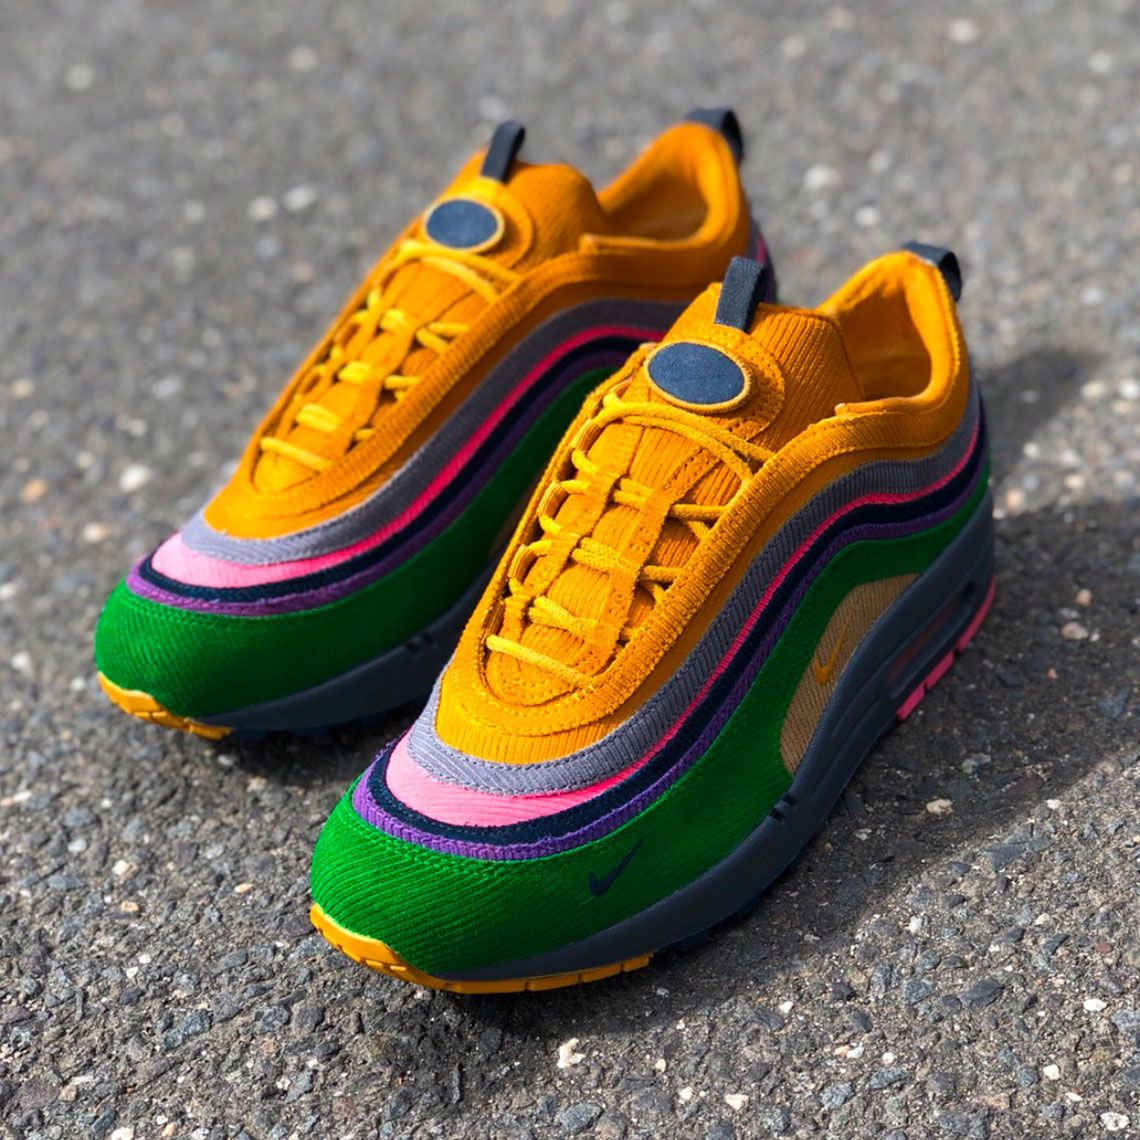 aebf7da563a Sean Wotherspoons Nike Air Max 97 1 Transformed Into Eclipse By Mache  Customs